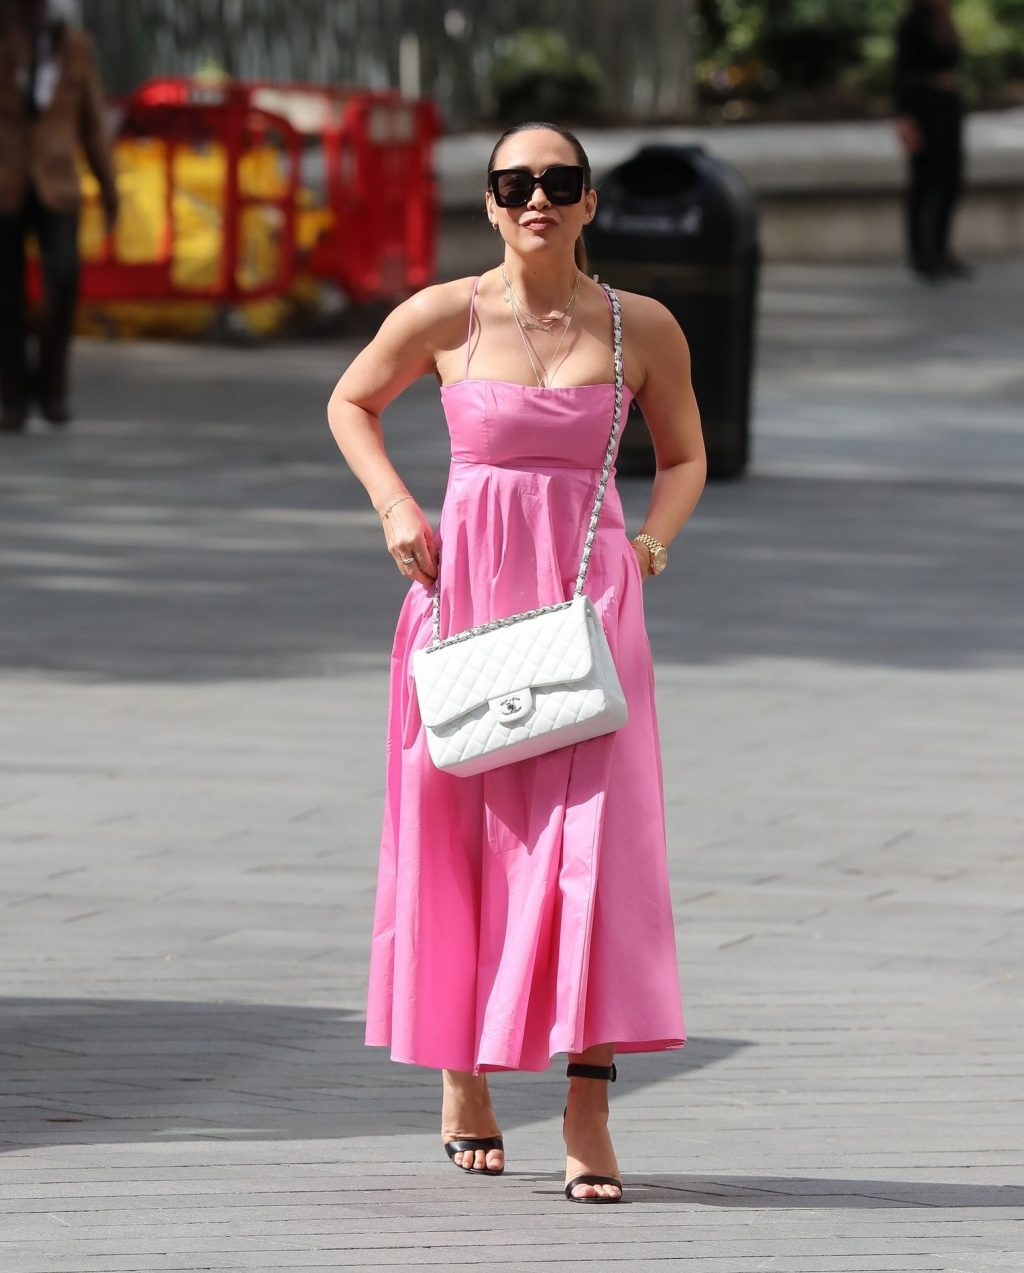 Myleene Klass Is Pictured Flawless Arriving at Global Offices (29 Photos)